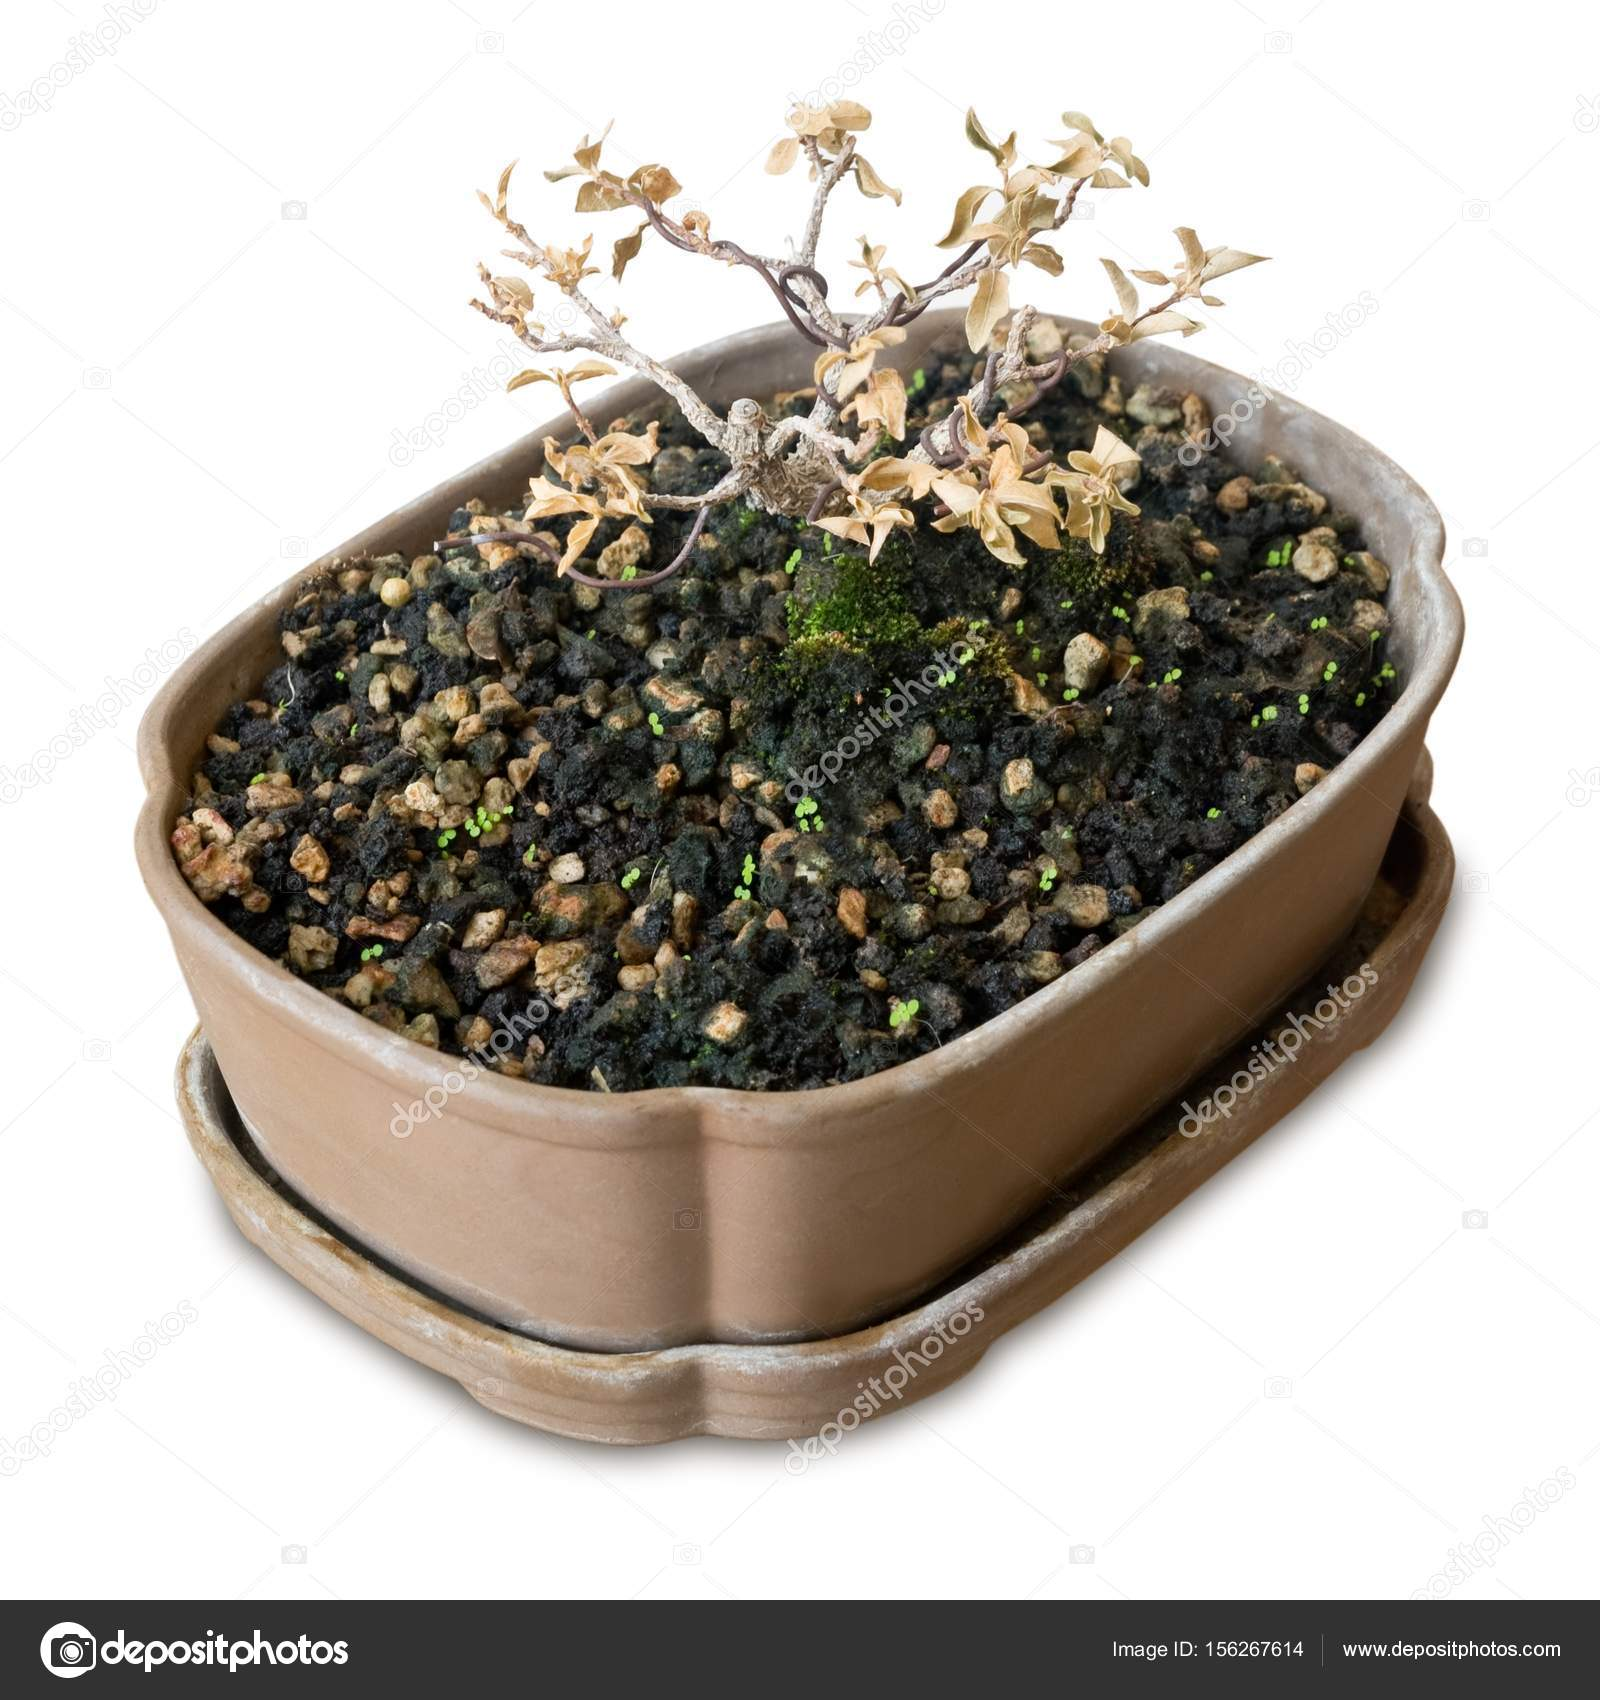 Dry Bonsai Tree In Plastic Pot On White Background Stock Photo C Arayabandit 156267614